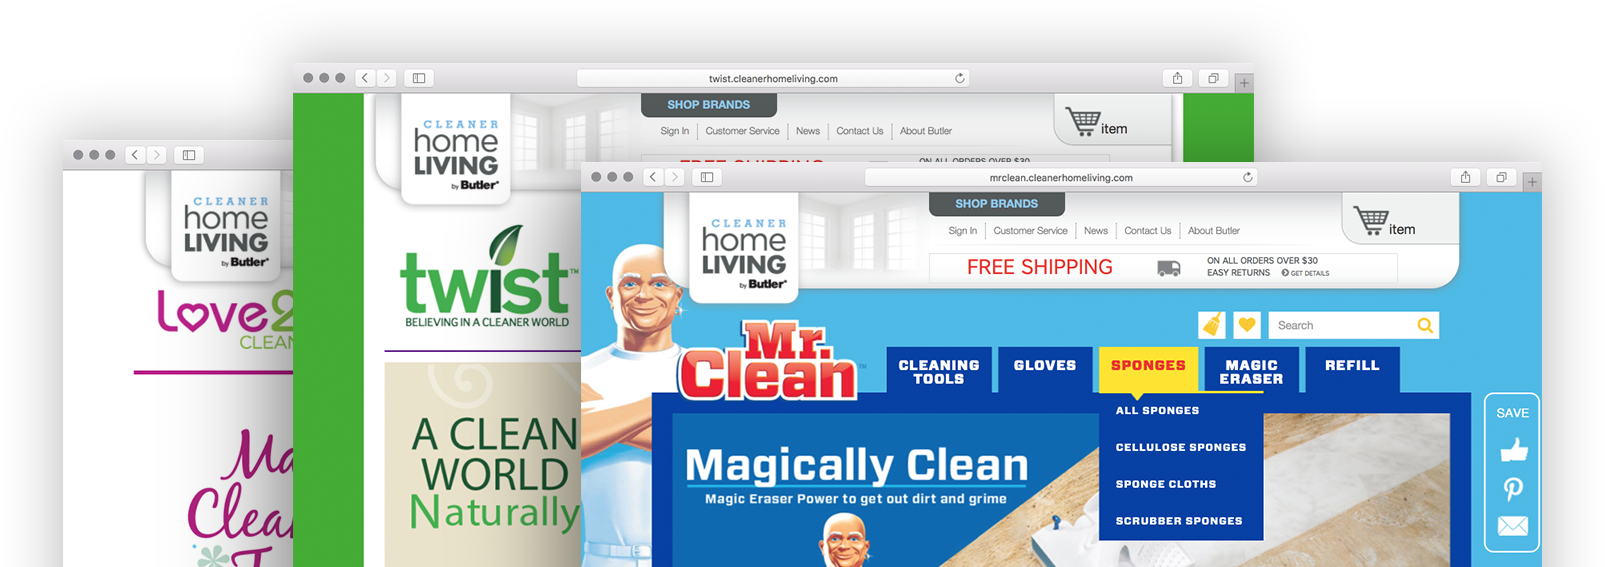 Cleaner Home Living Multistore Screens